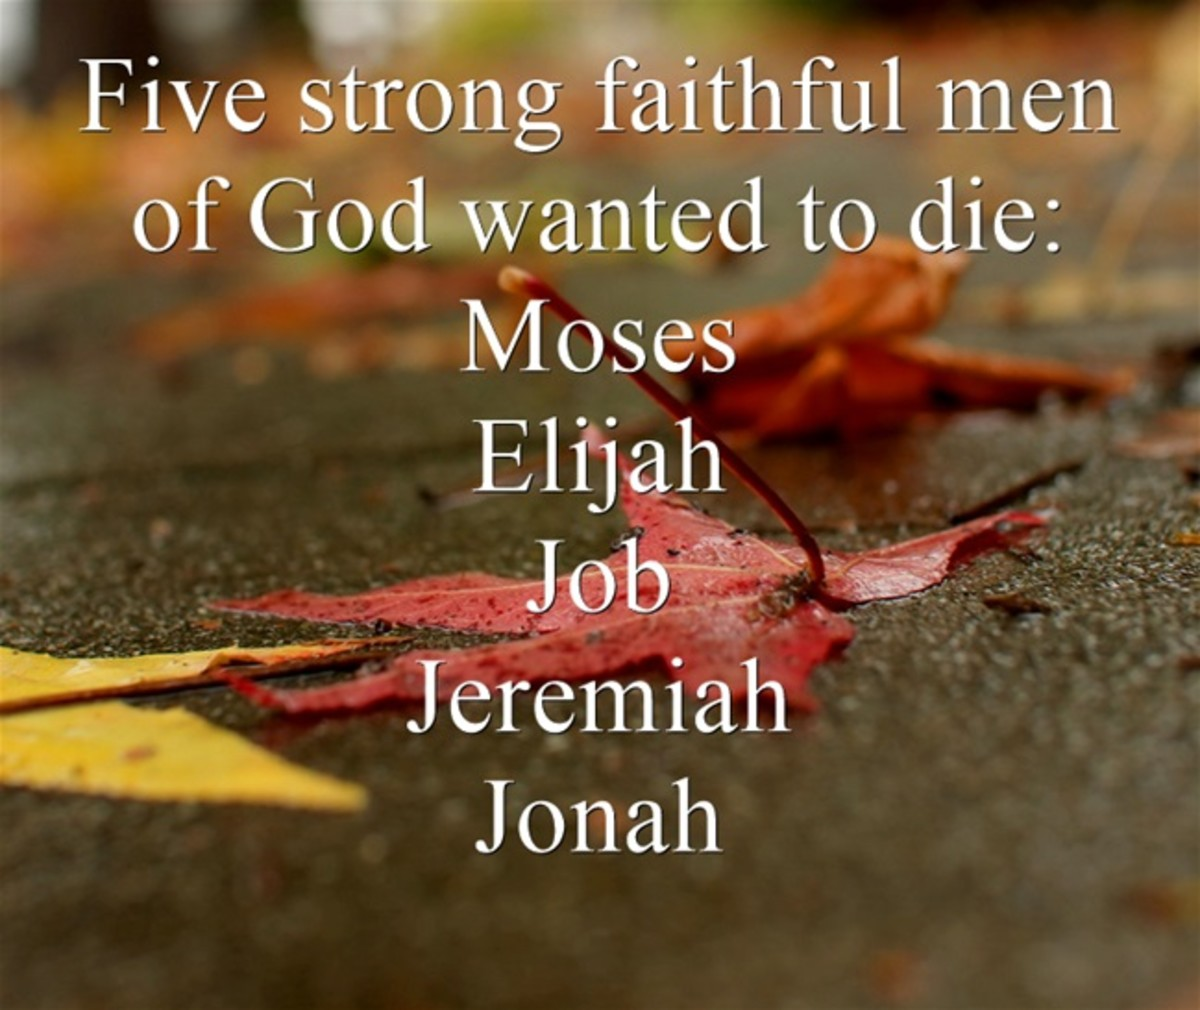 Five men of God wanted to die.